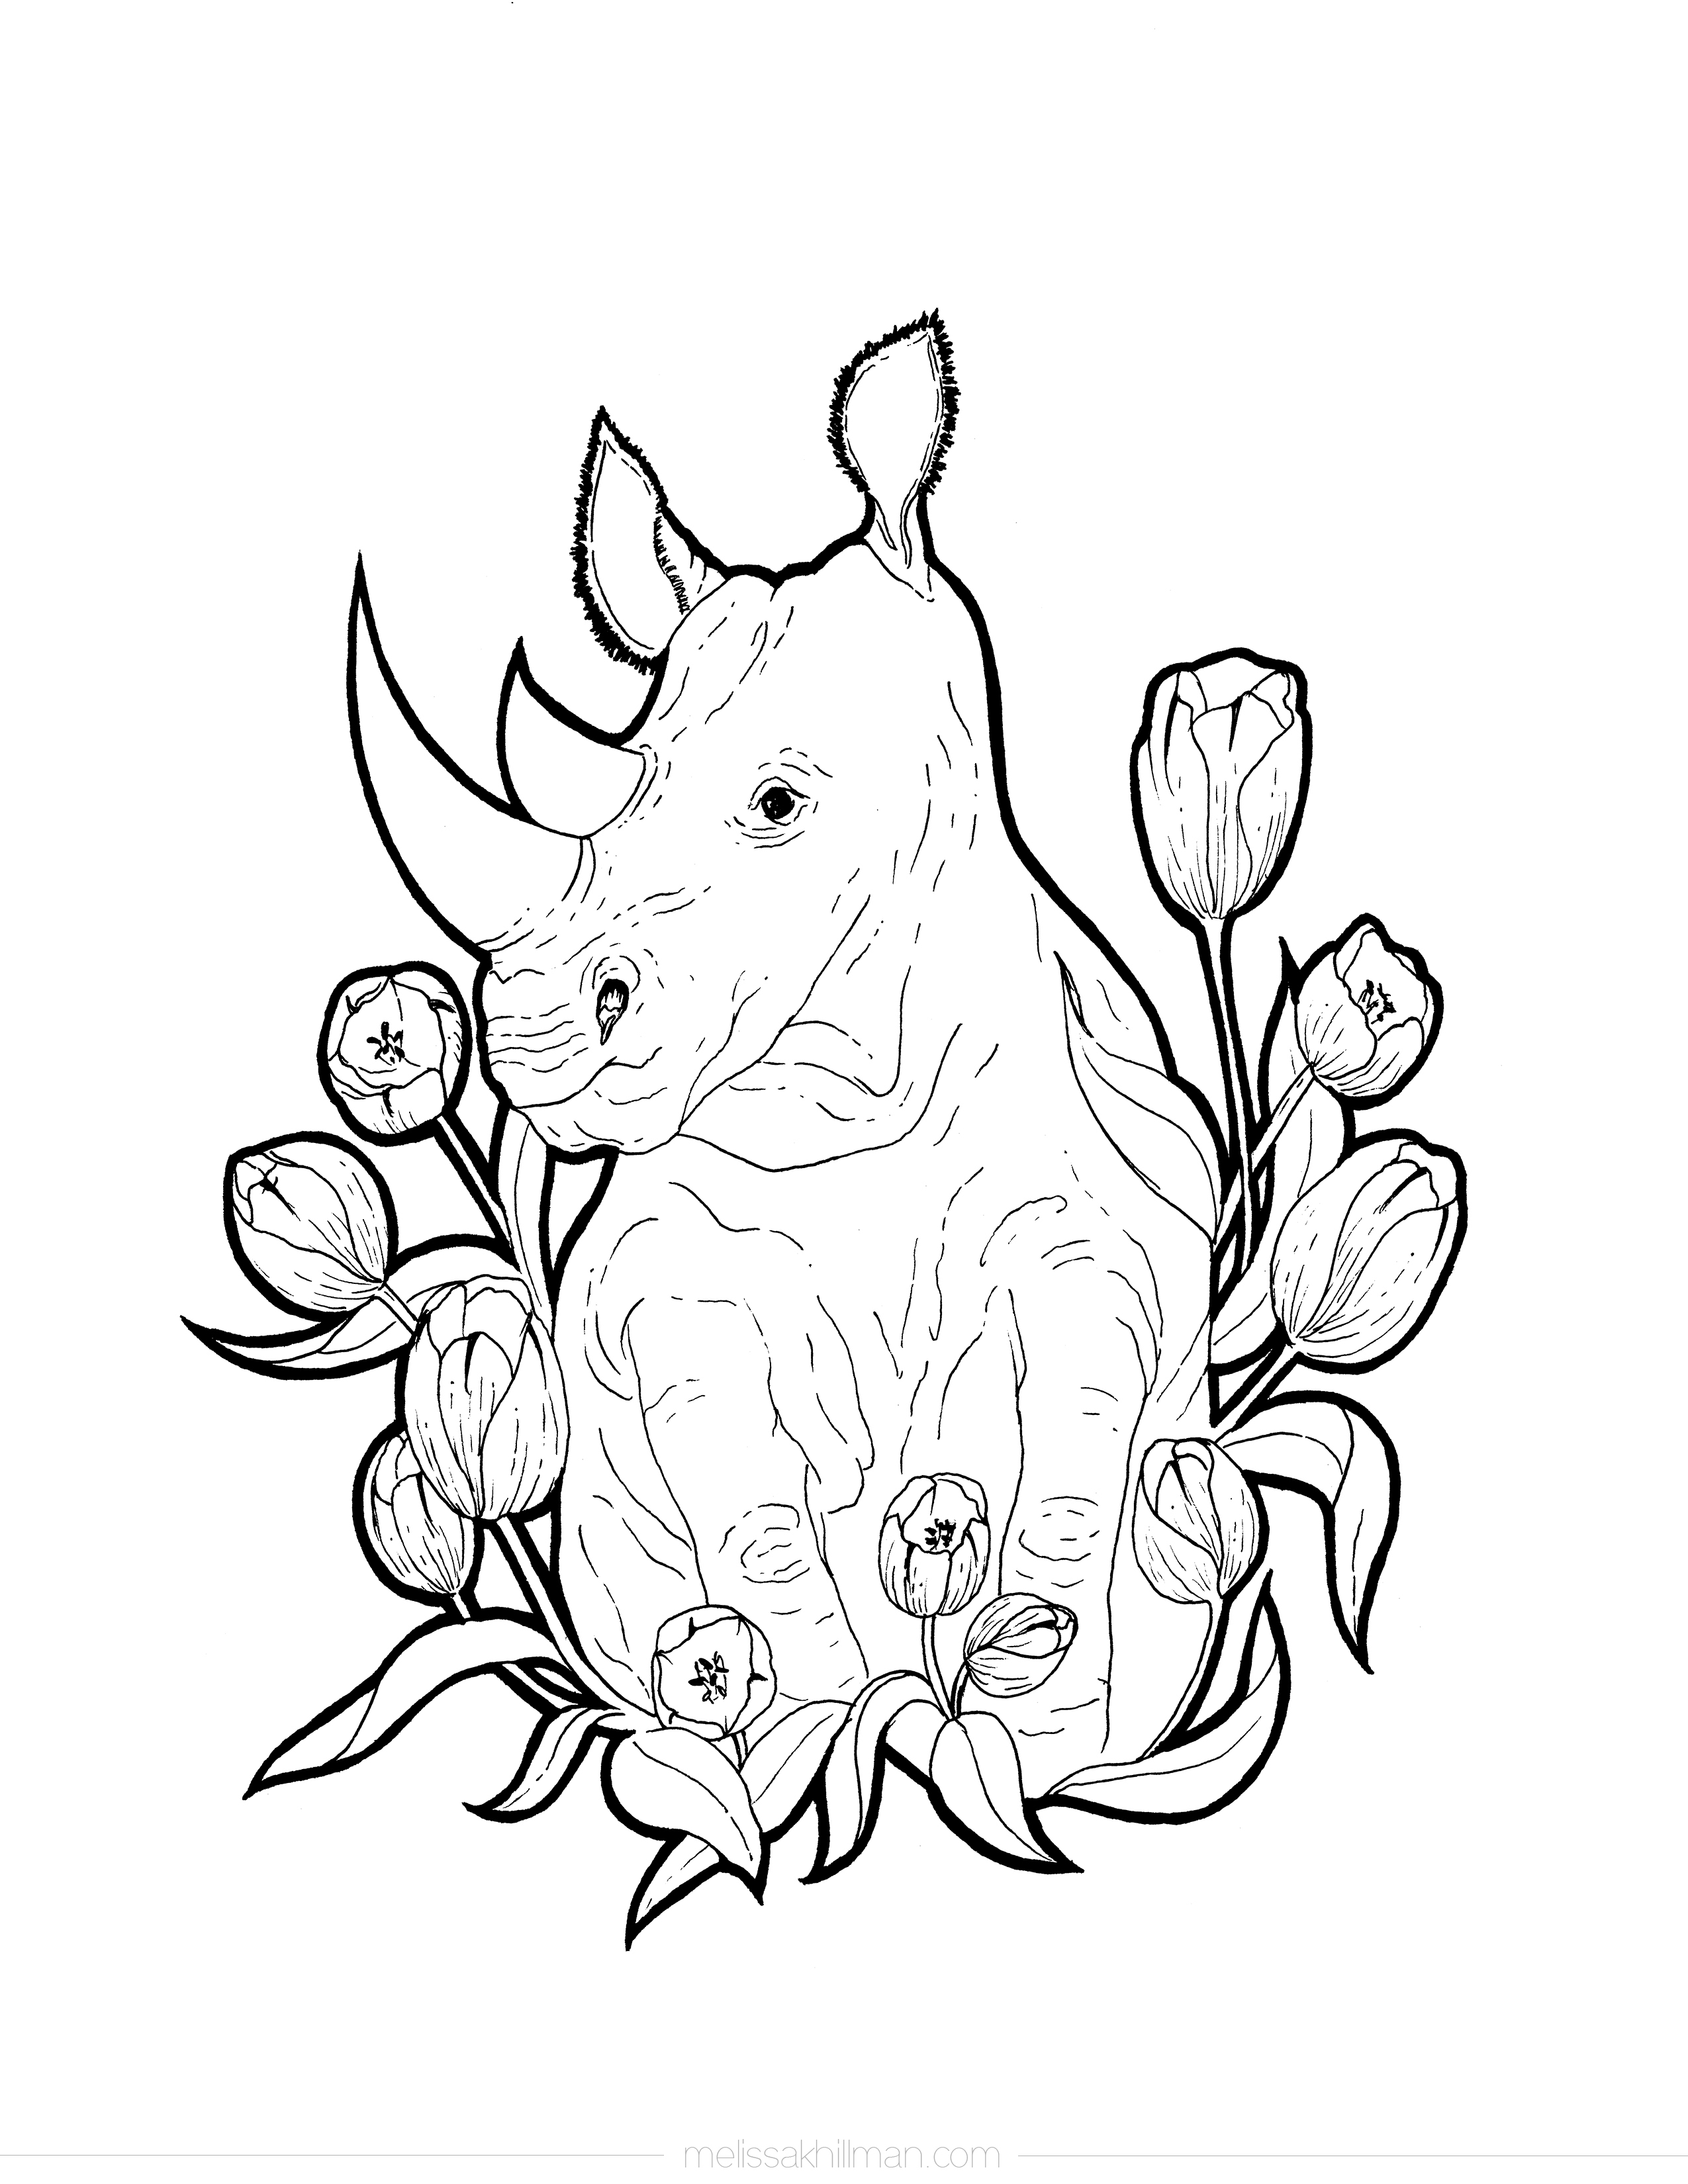 rhino coloring pages rhinoceros coloring page pages rhino coloring